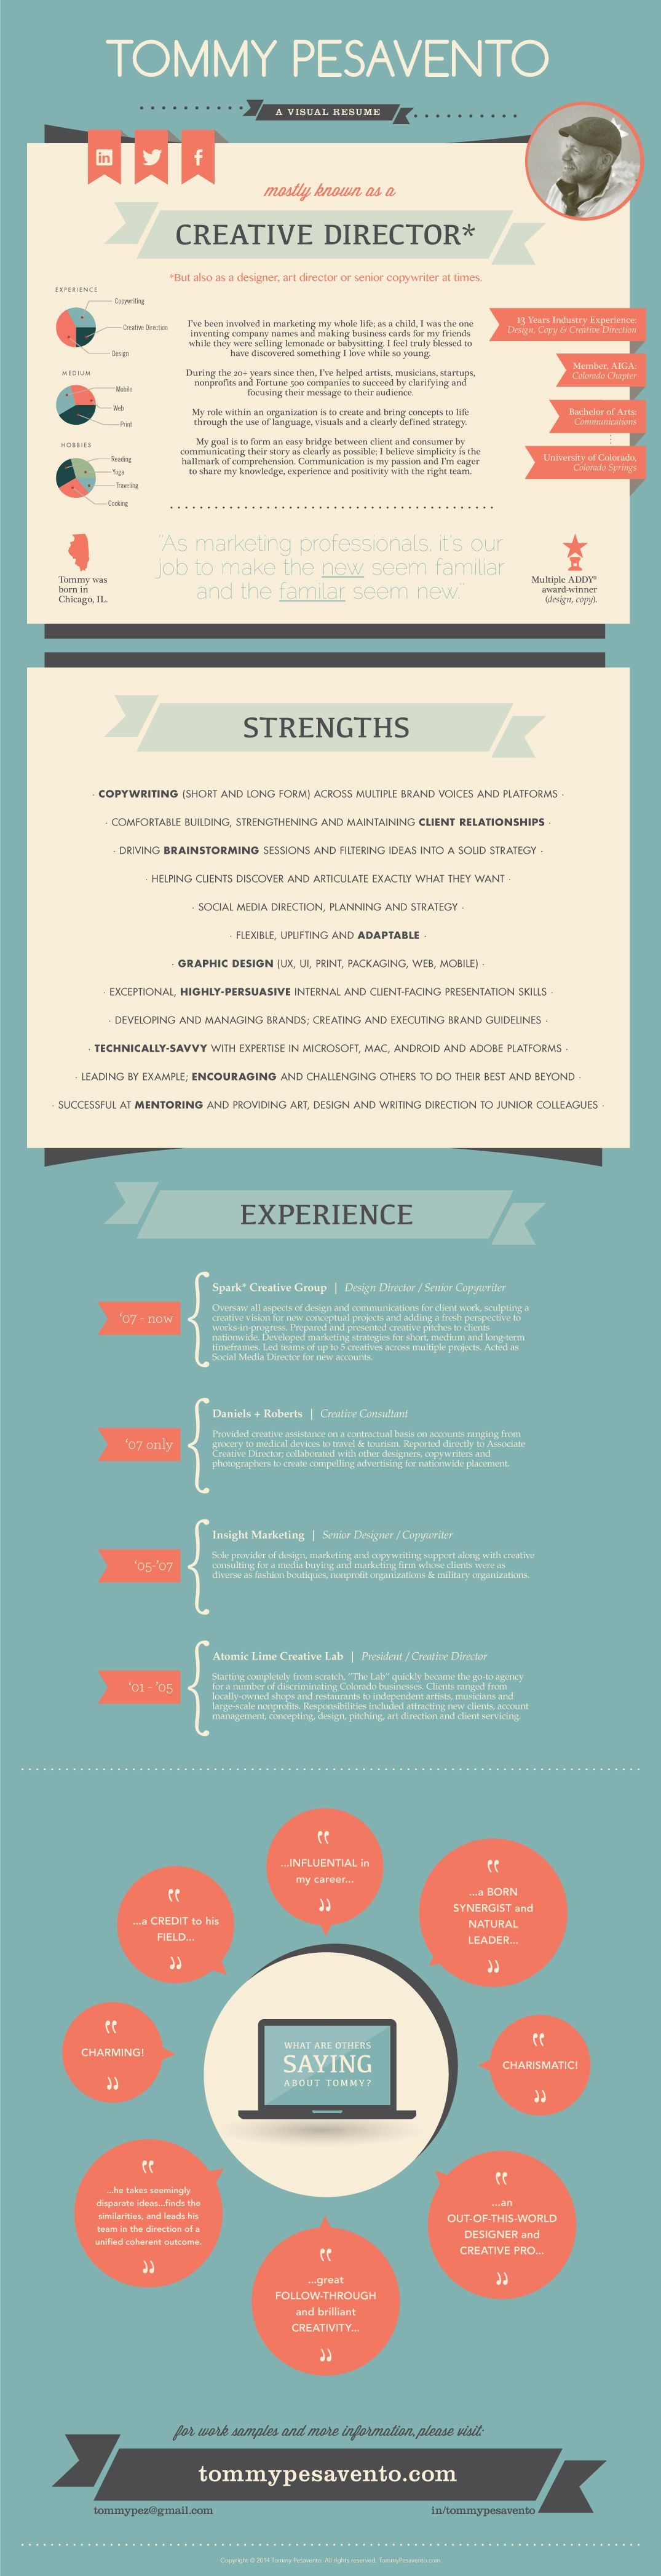 Infographic: My Visual Resume - tommy pesavento | Design ...